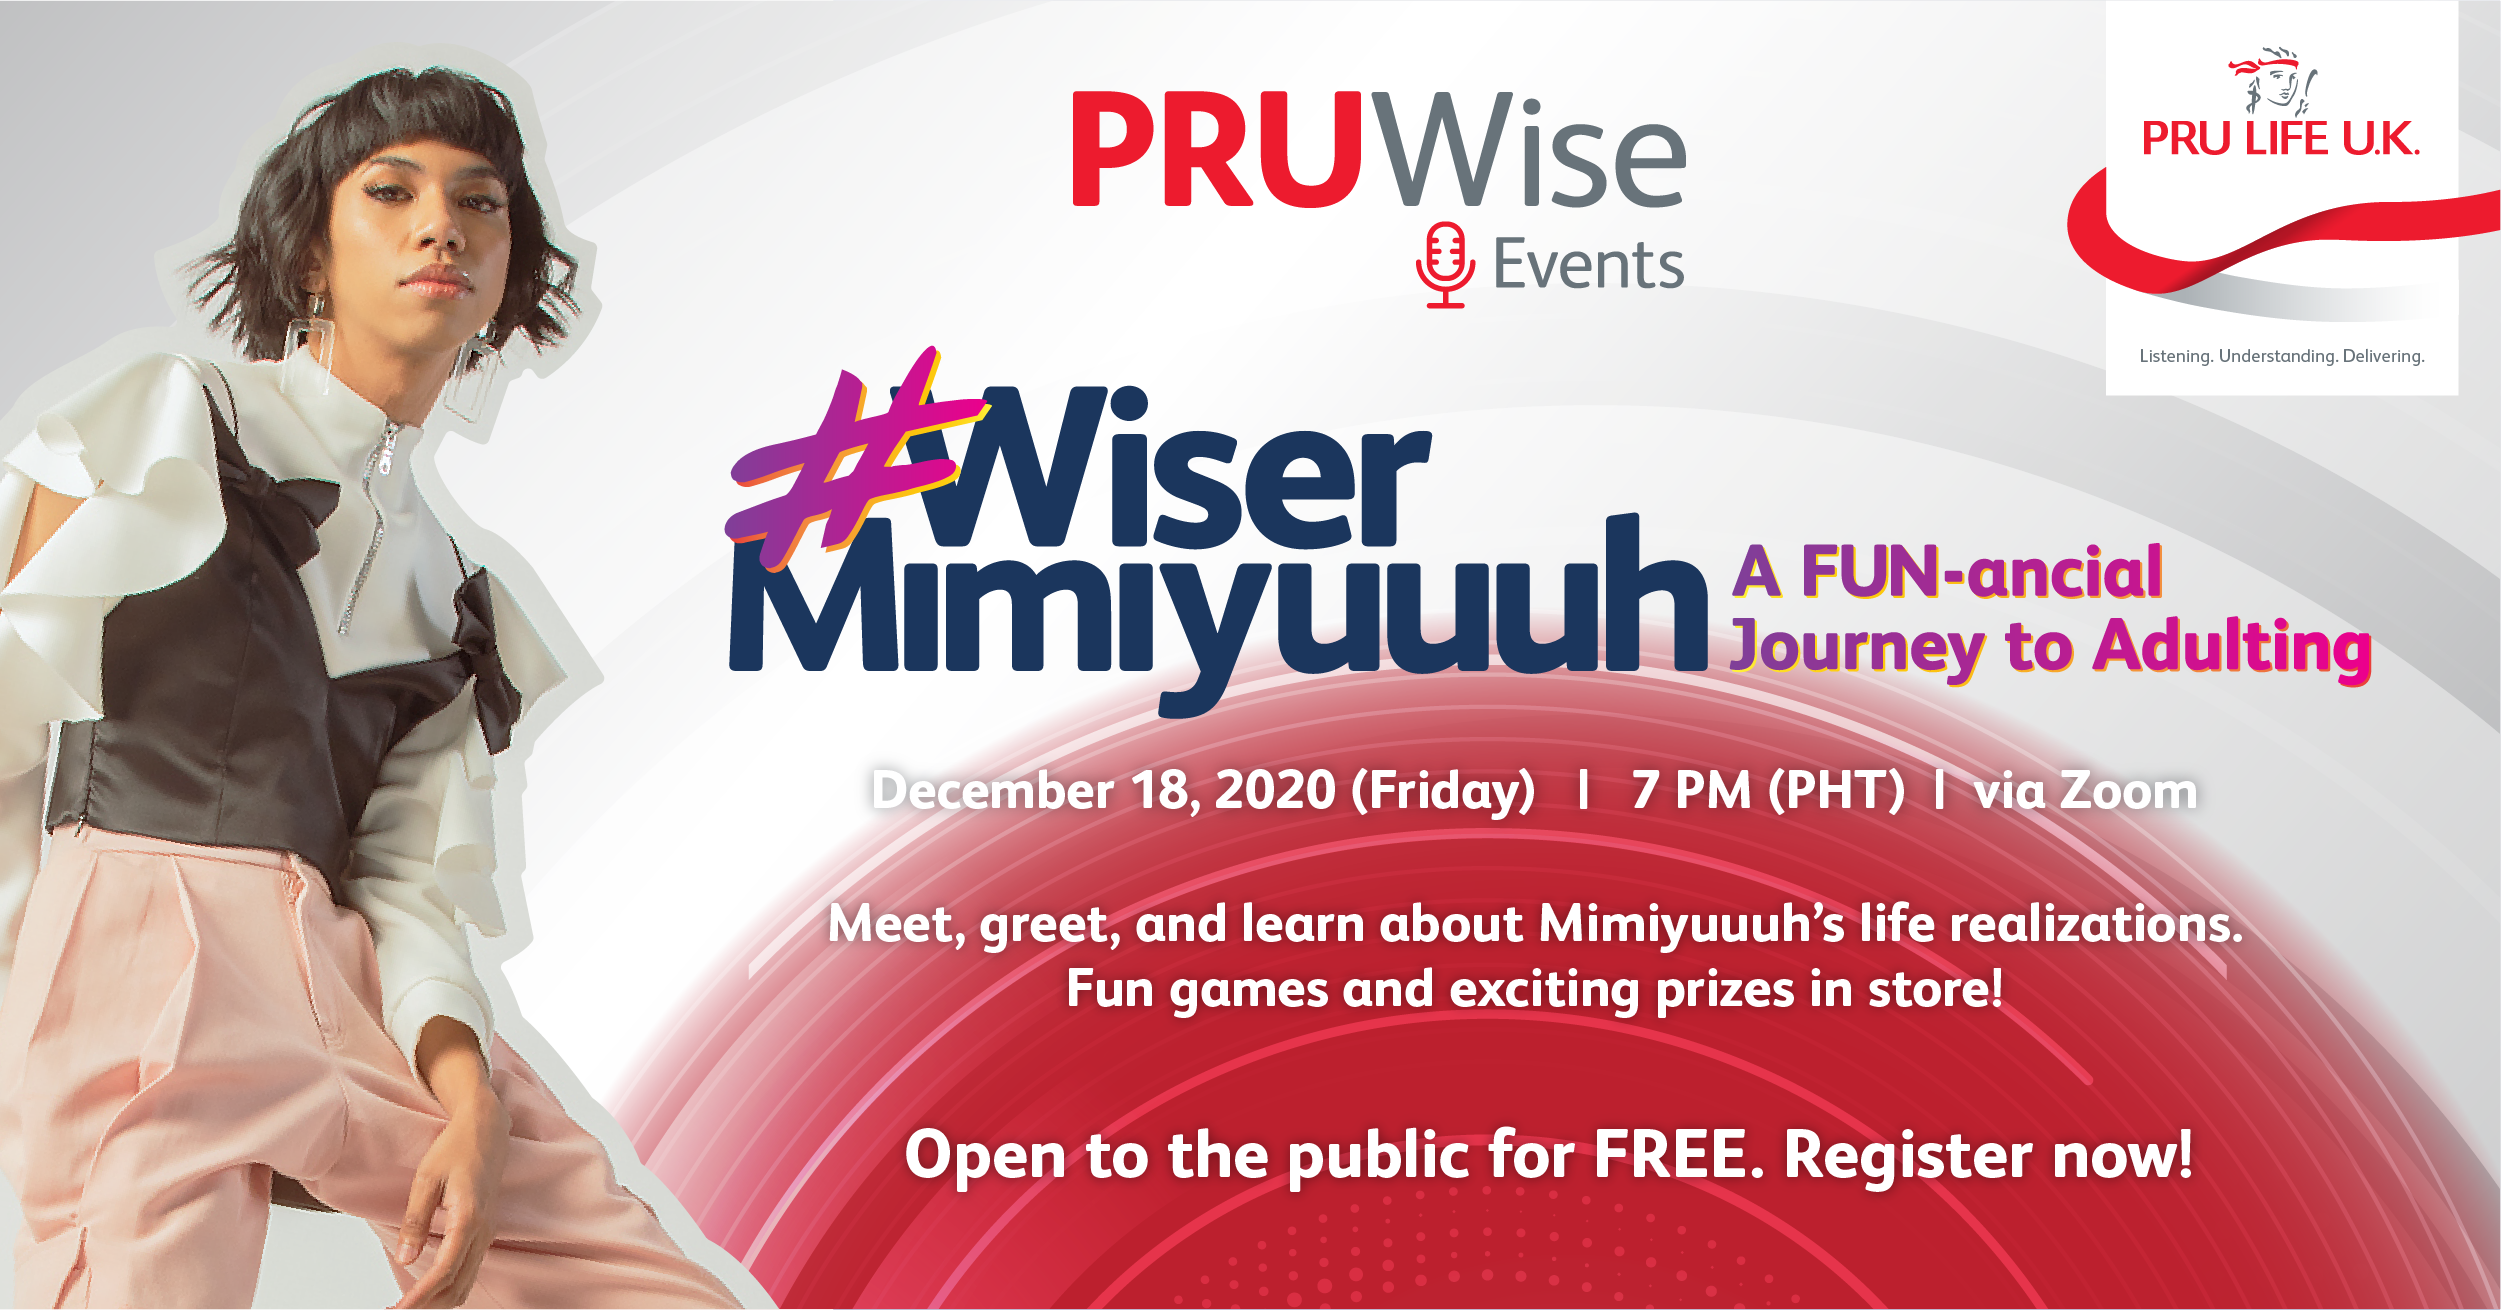 Learn and laugh with social media sensation Mimiyuuuh as Pru Life UK premieres PRUWise Events